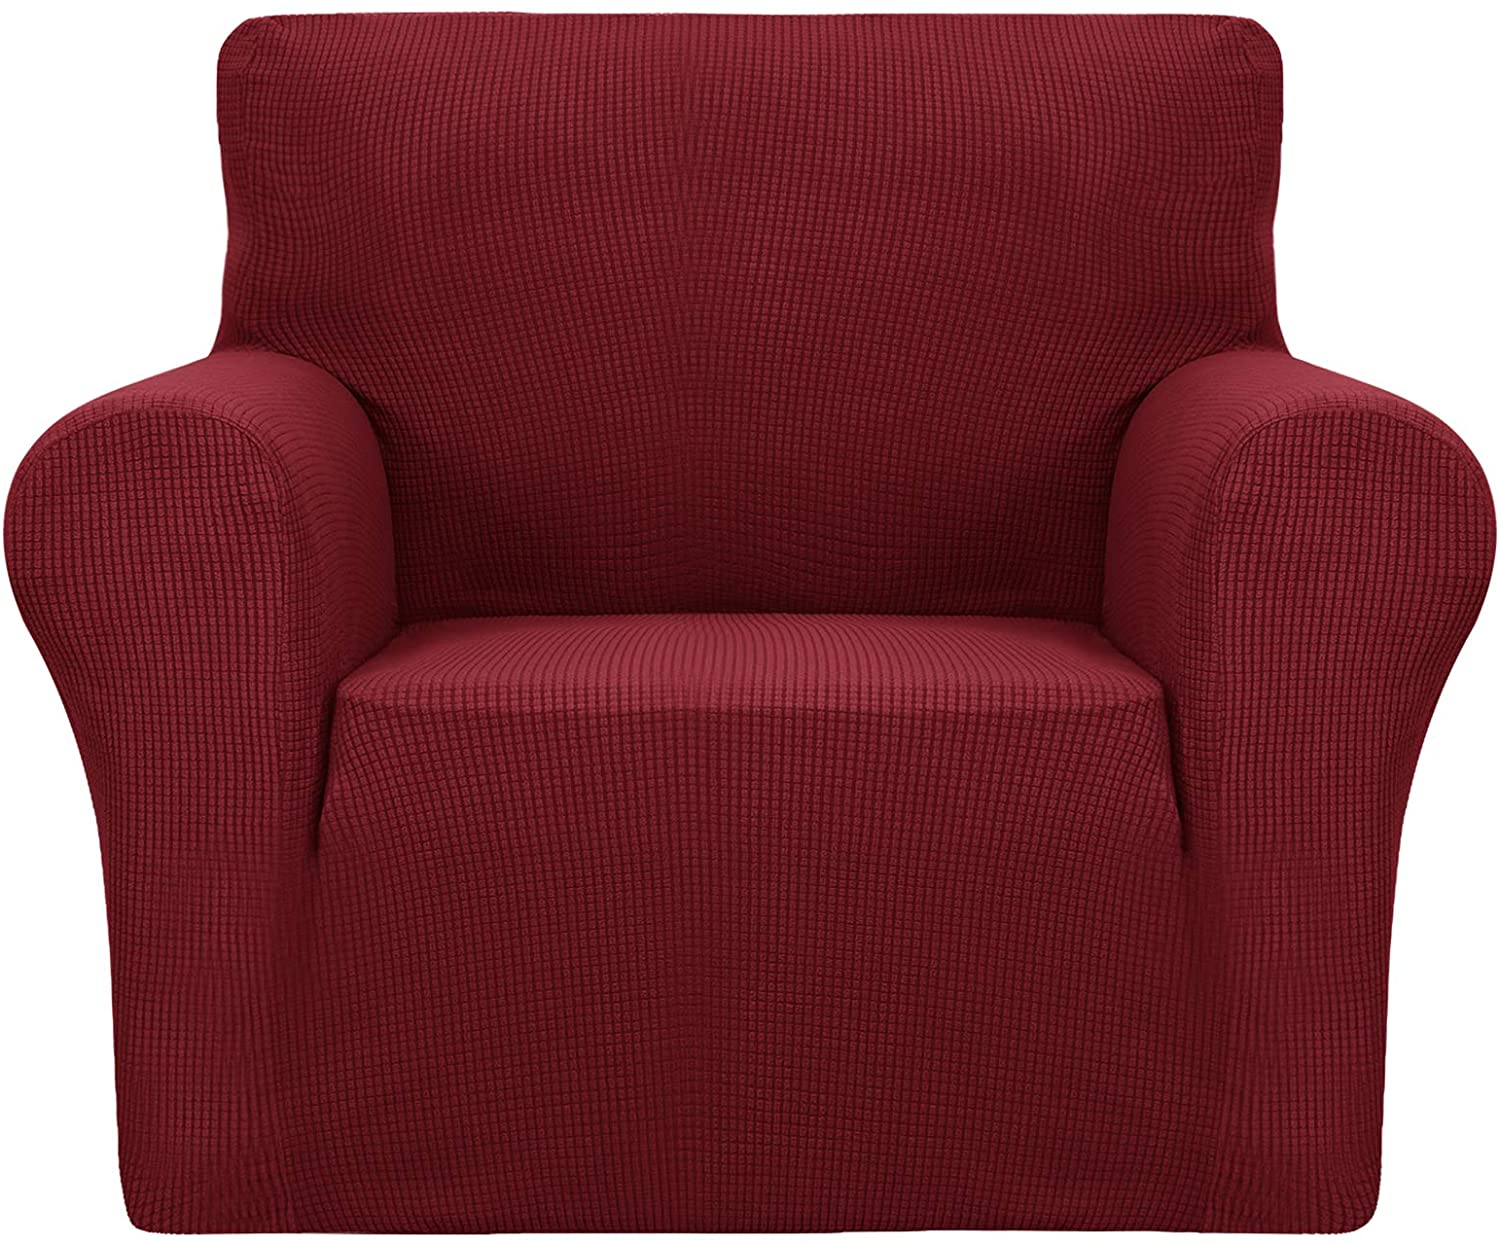 YUUHUM Chair Cover Stretch Jacquard Chair Slipcover with Arms Universal Fitted Sofa Armchair Covers for Living Room Non Slip Spandex Couch Protector with Elastic Bottom (Chair, Wine Red)